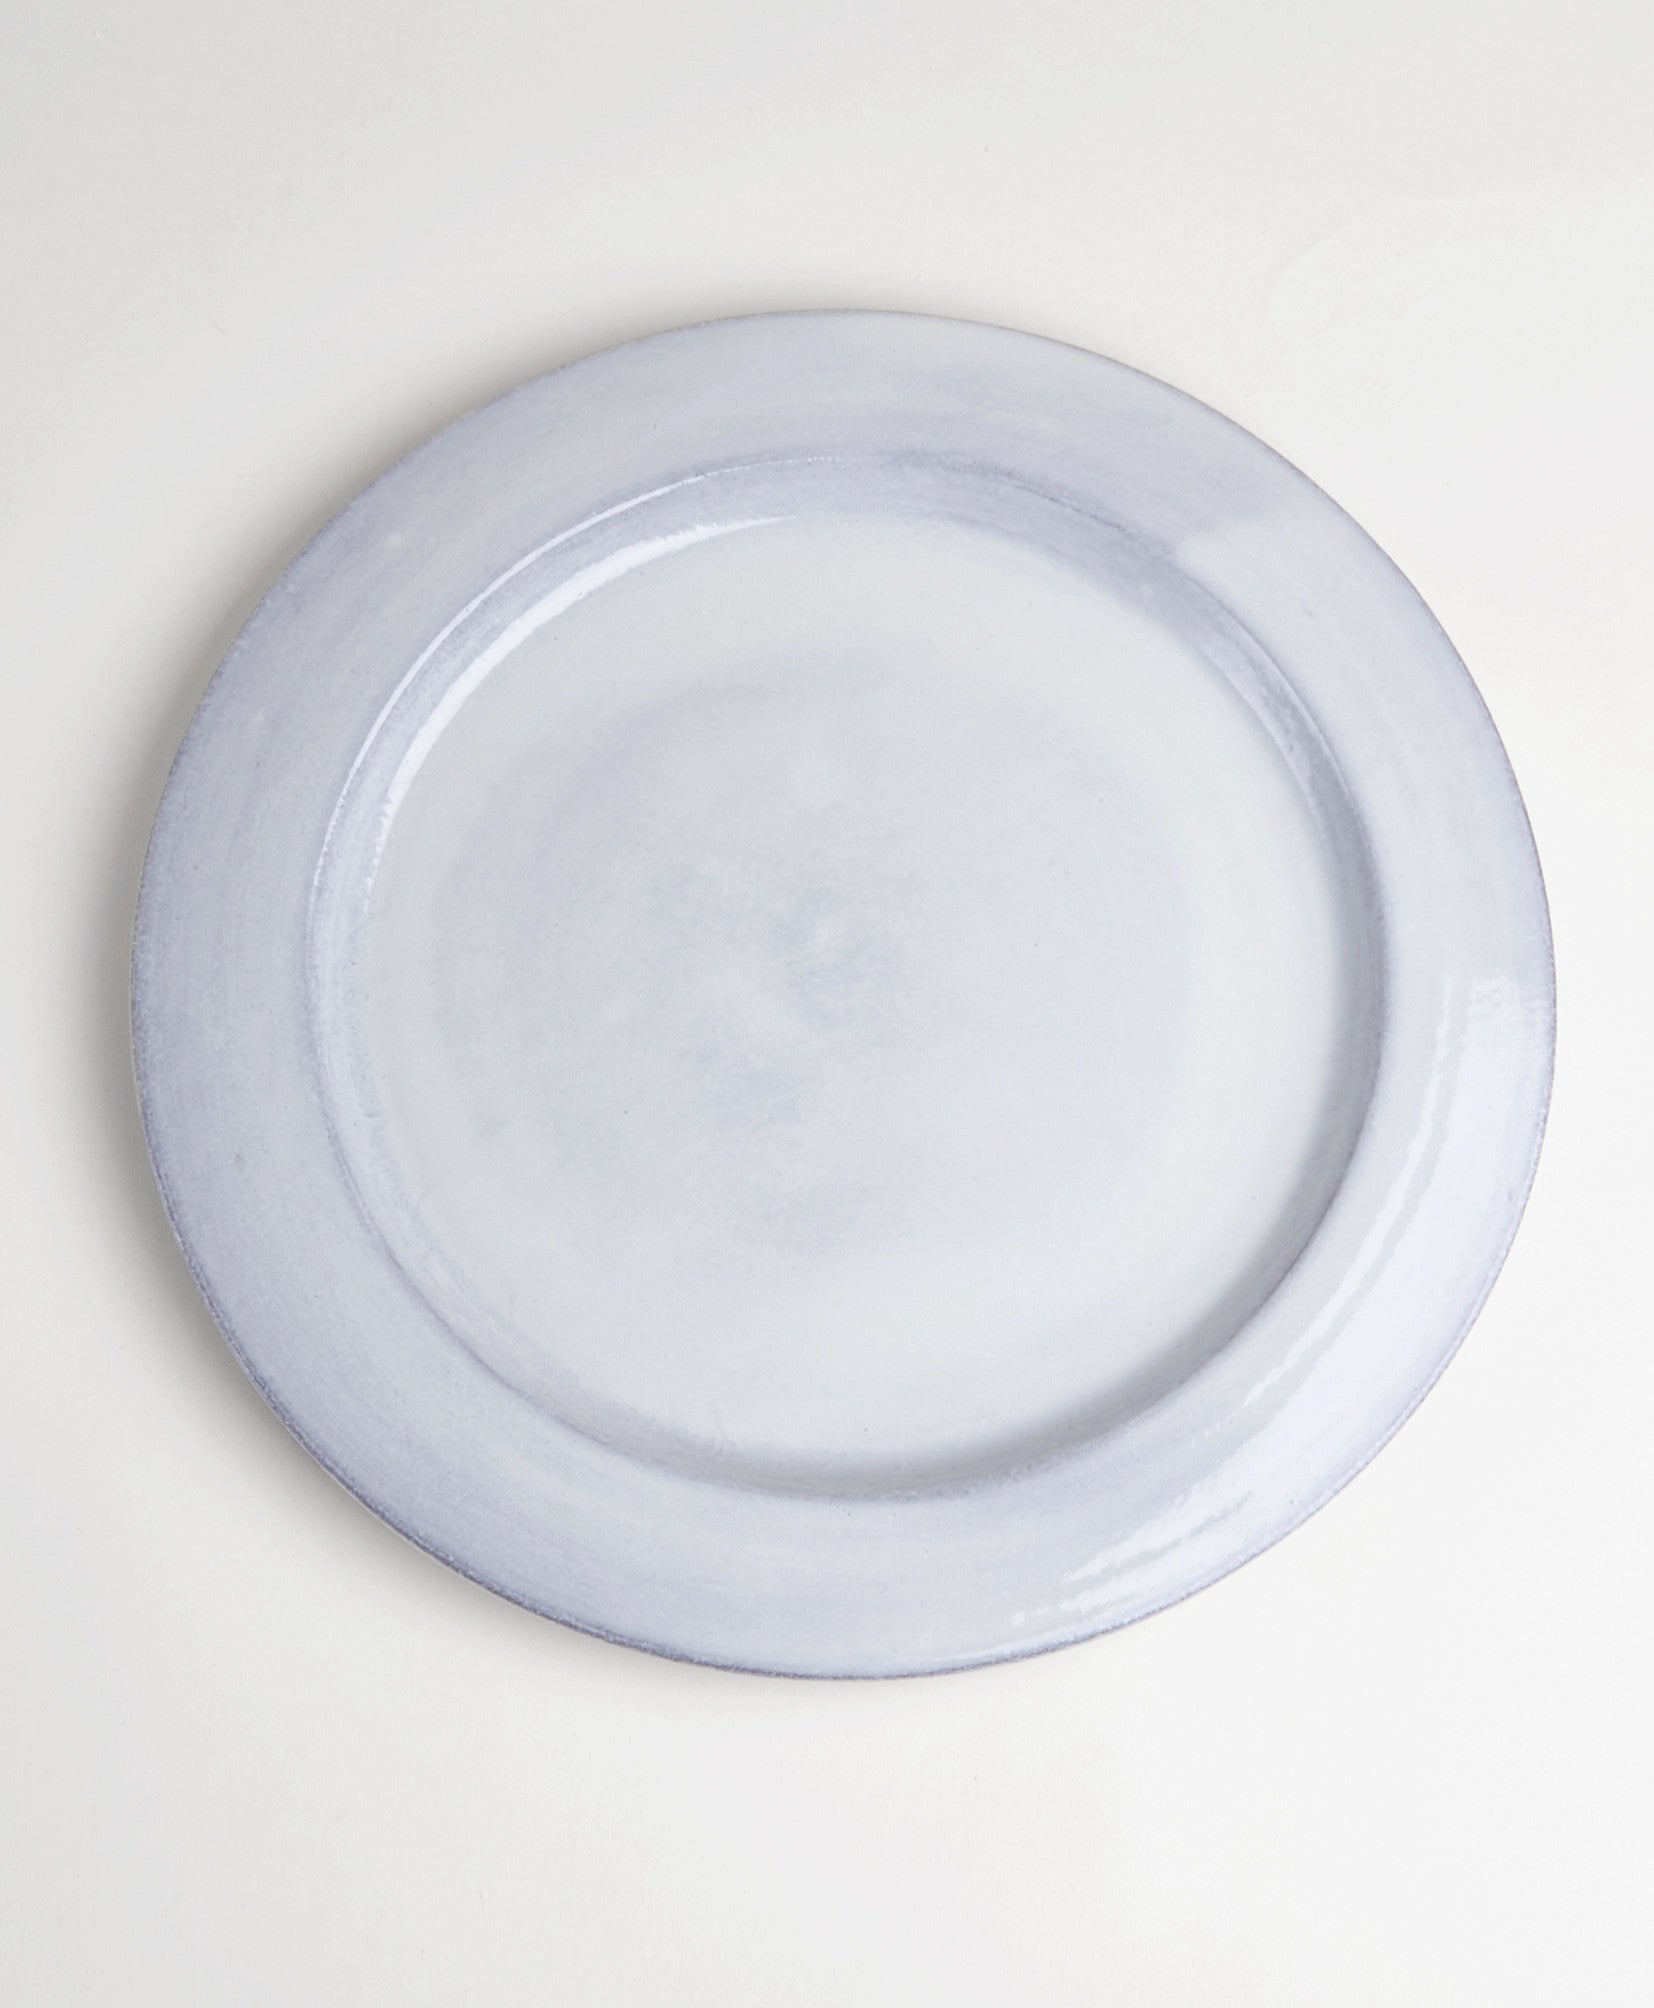 Rimmed Dinner Plate - Il Buco Vita : picture dinner plate - pezcame.com